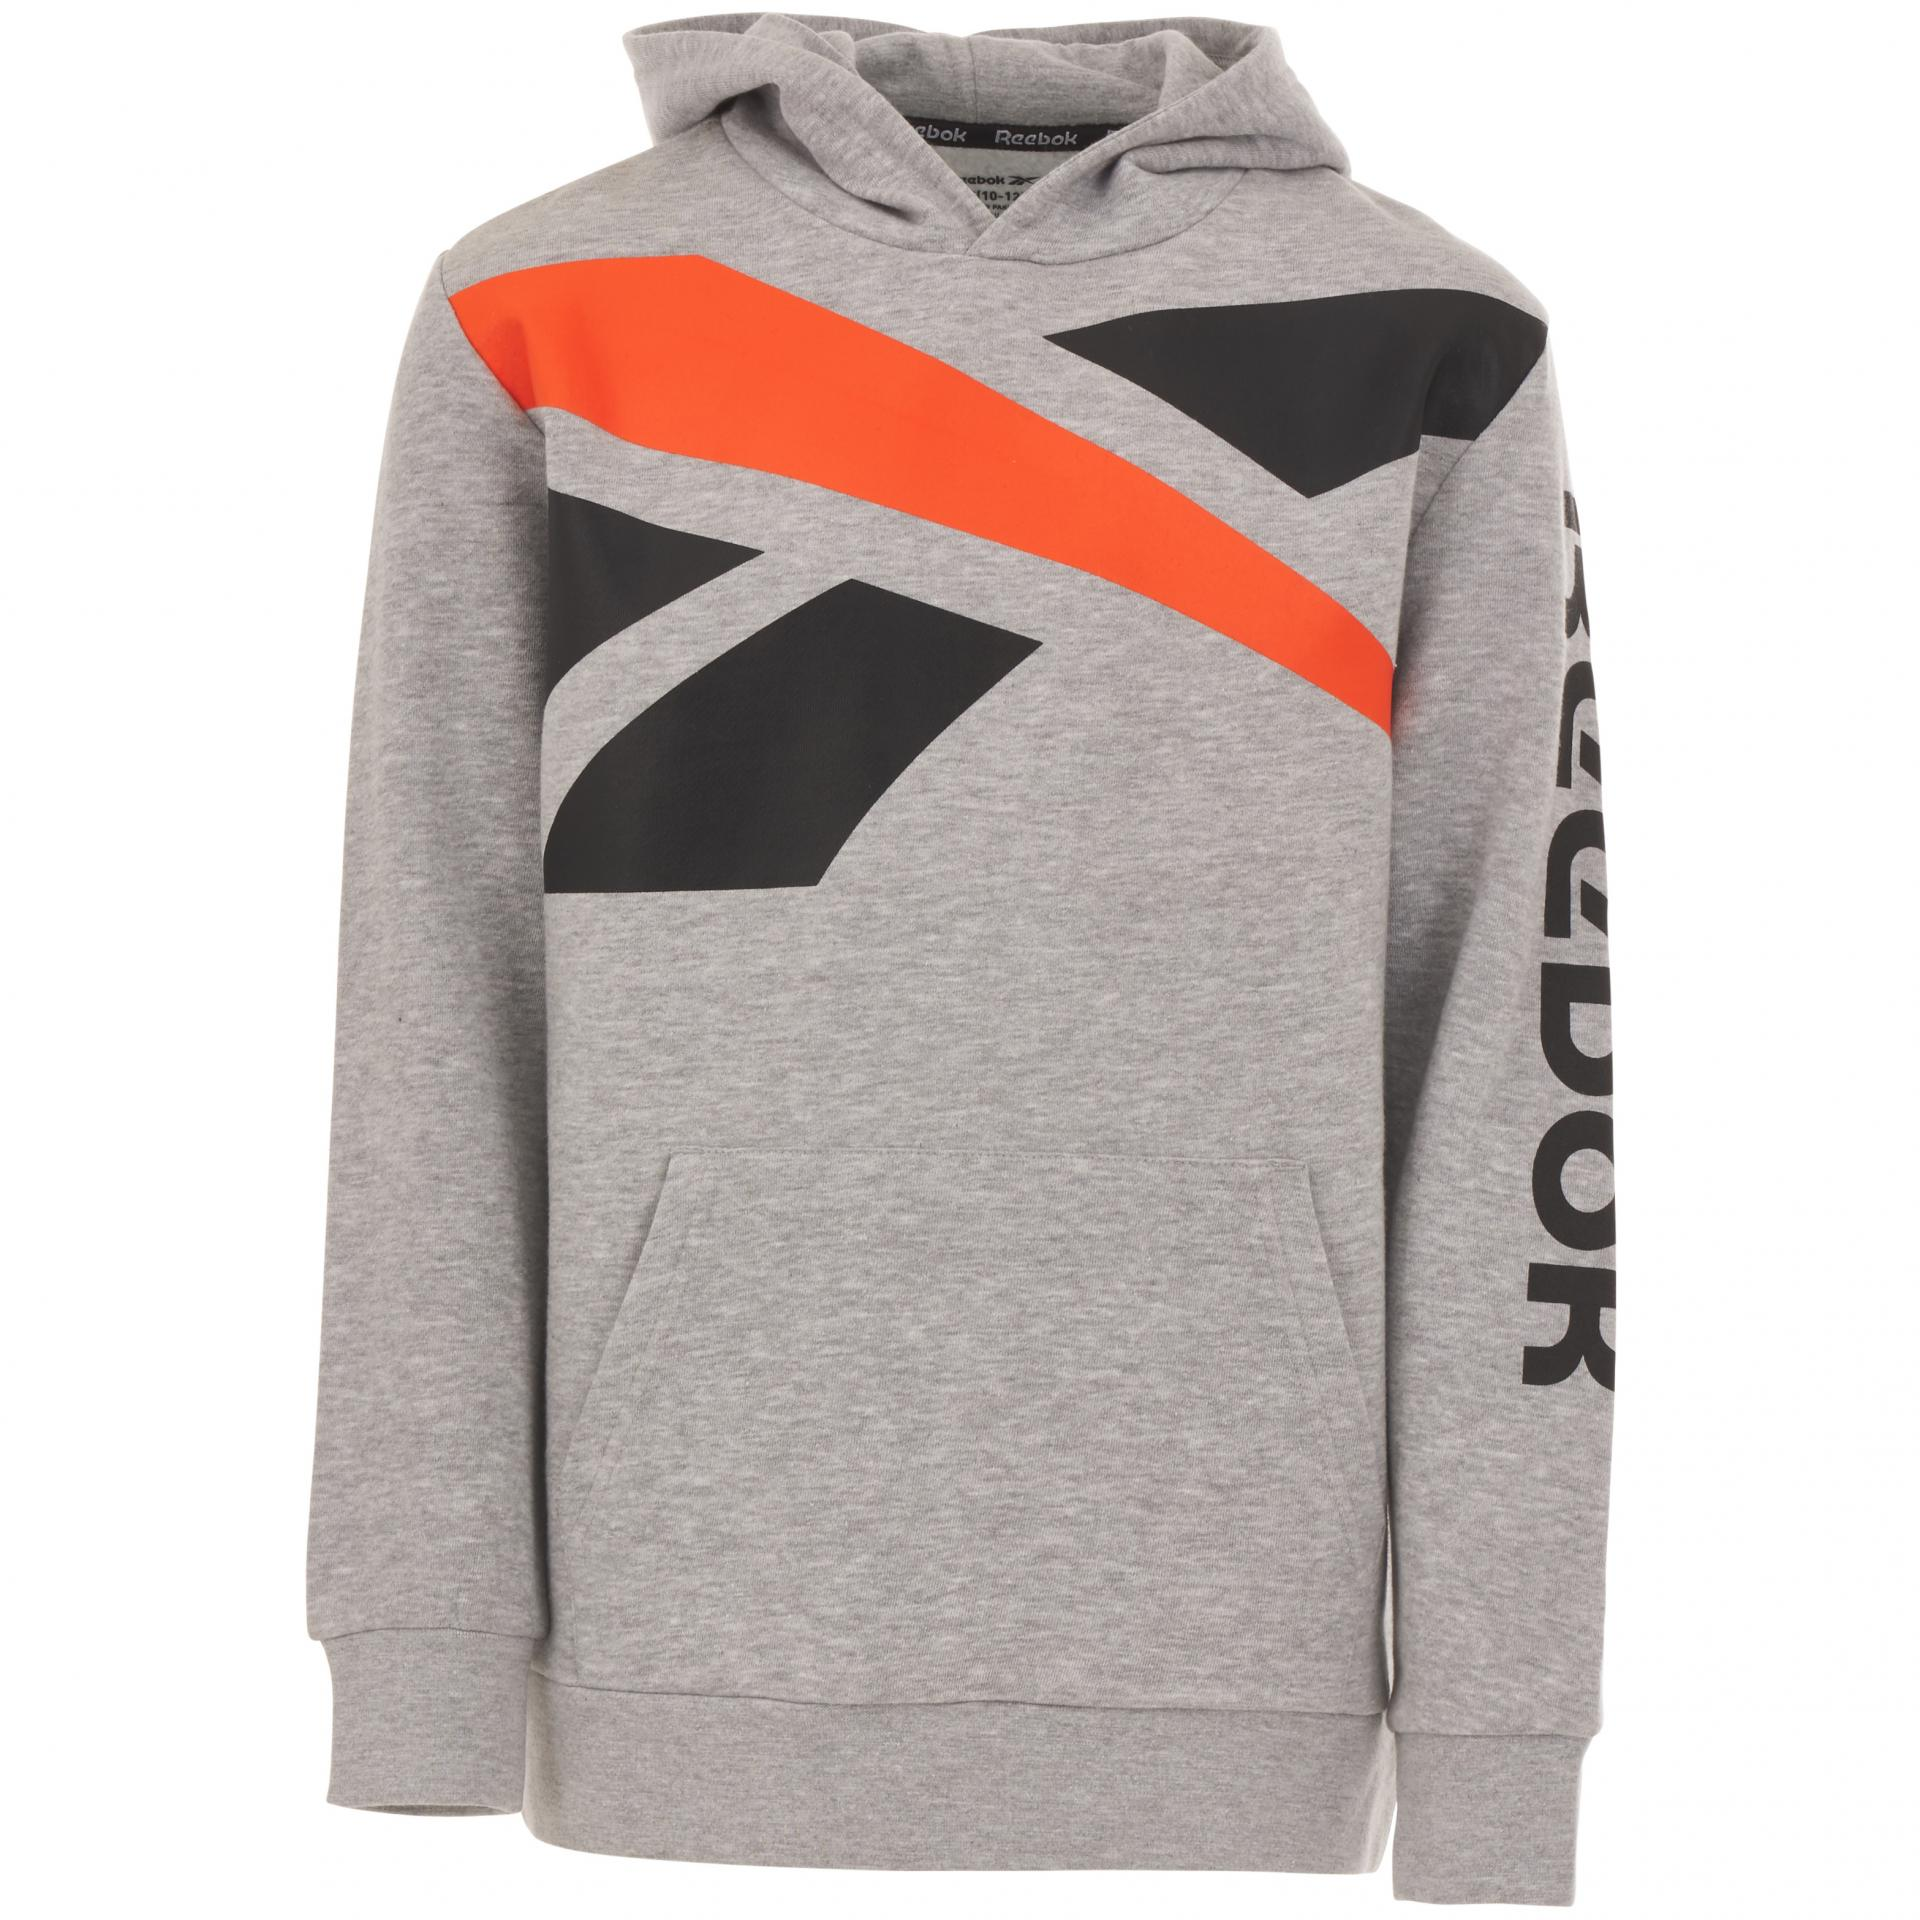 Reebok Sudadera Big Intl Fleece. Color Light Heather Grey. EW8604